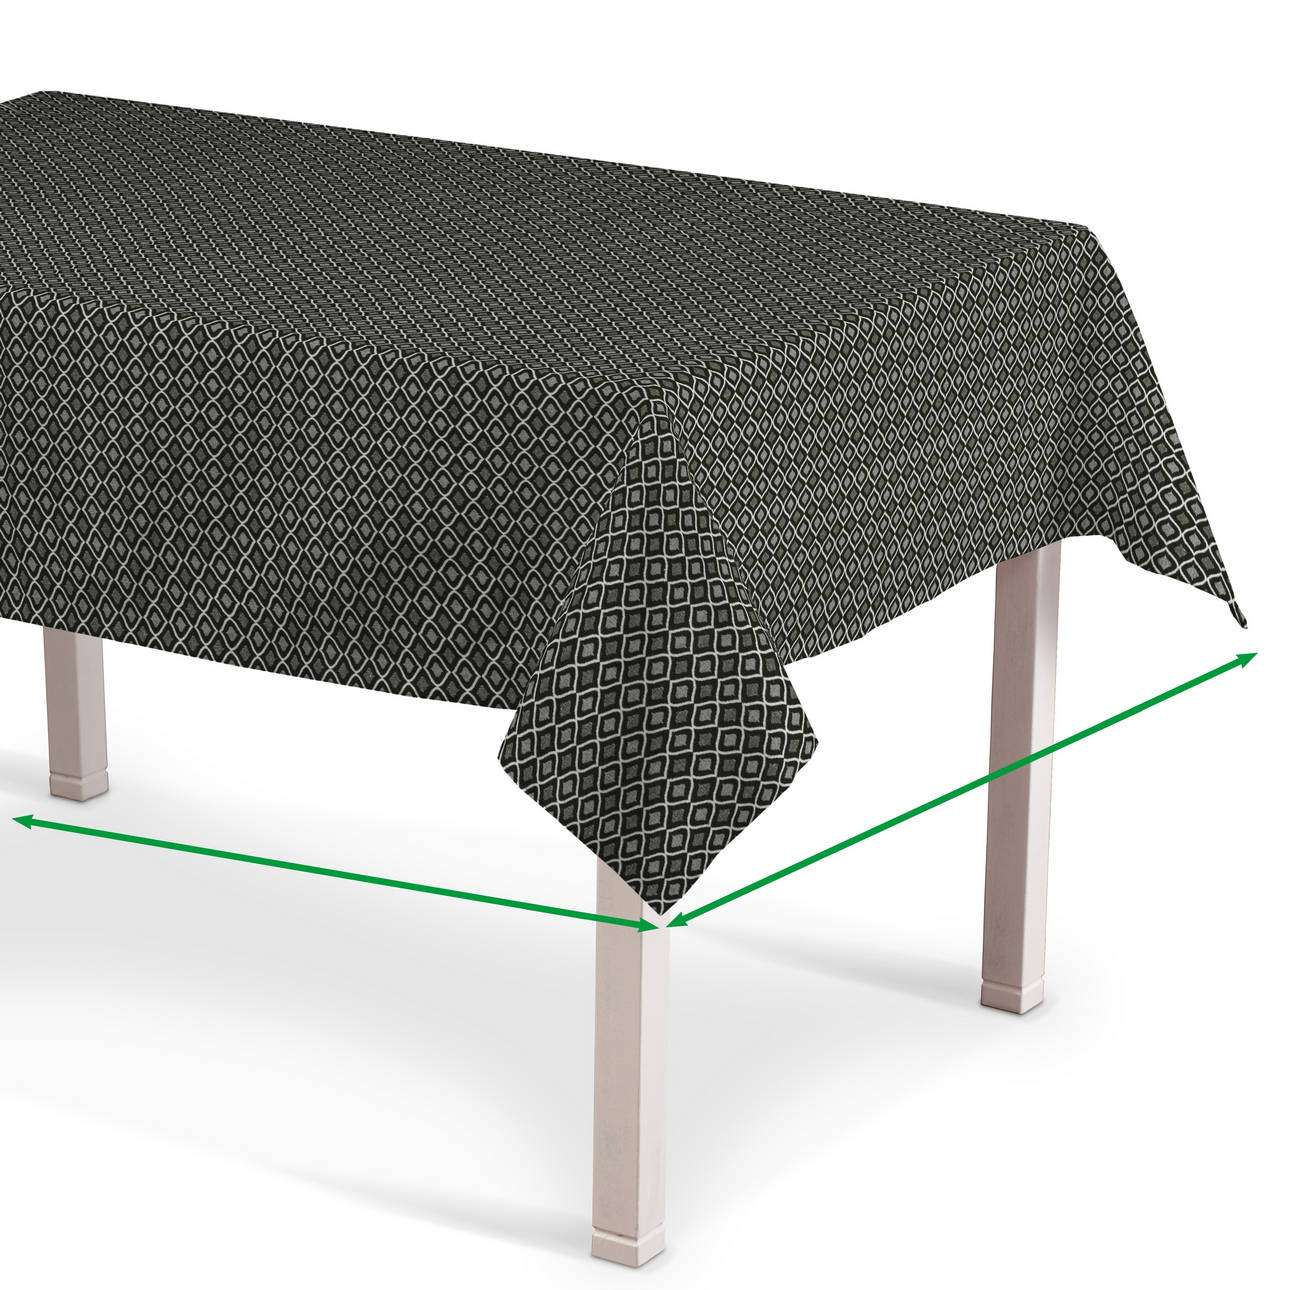 Rectangular tablecloth in collection Black & White, fabric: 142-86